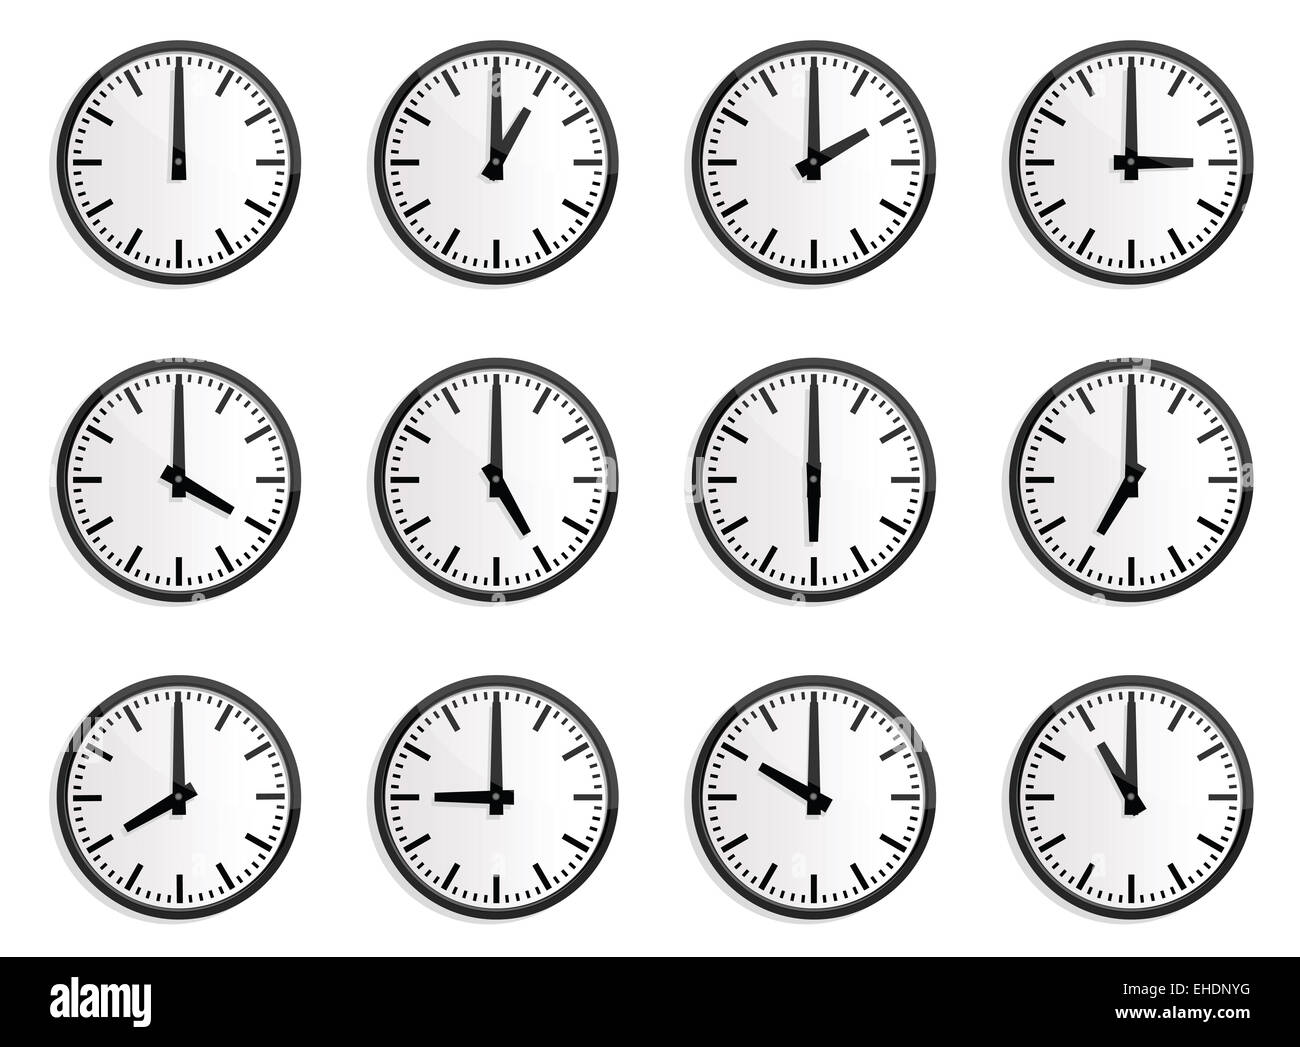 12 Hours Clock Stock Photo Royalty Free Image